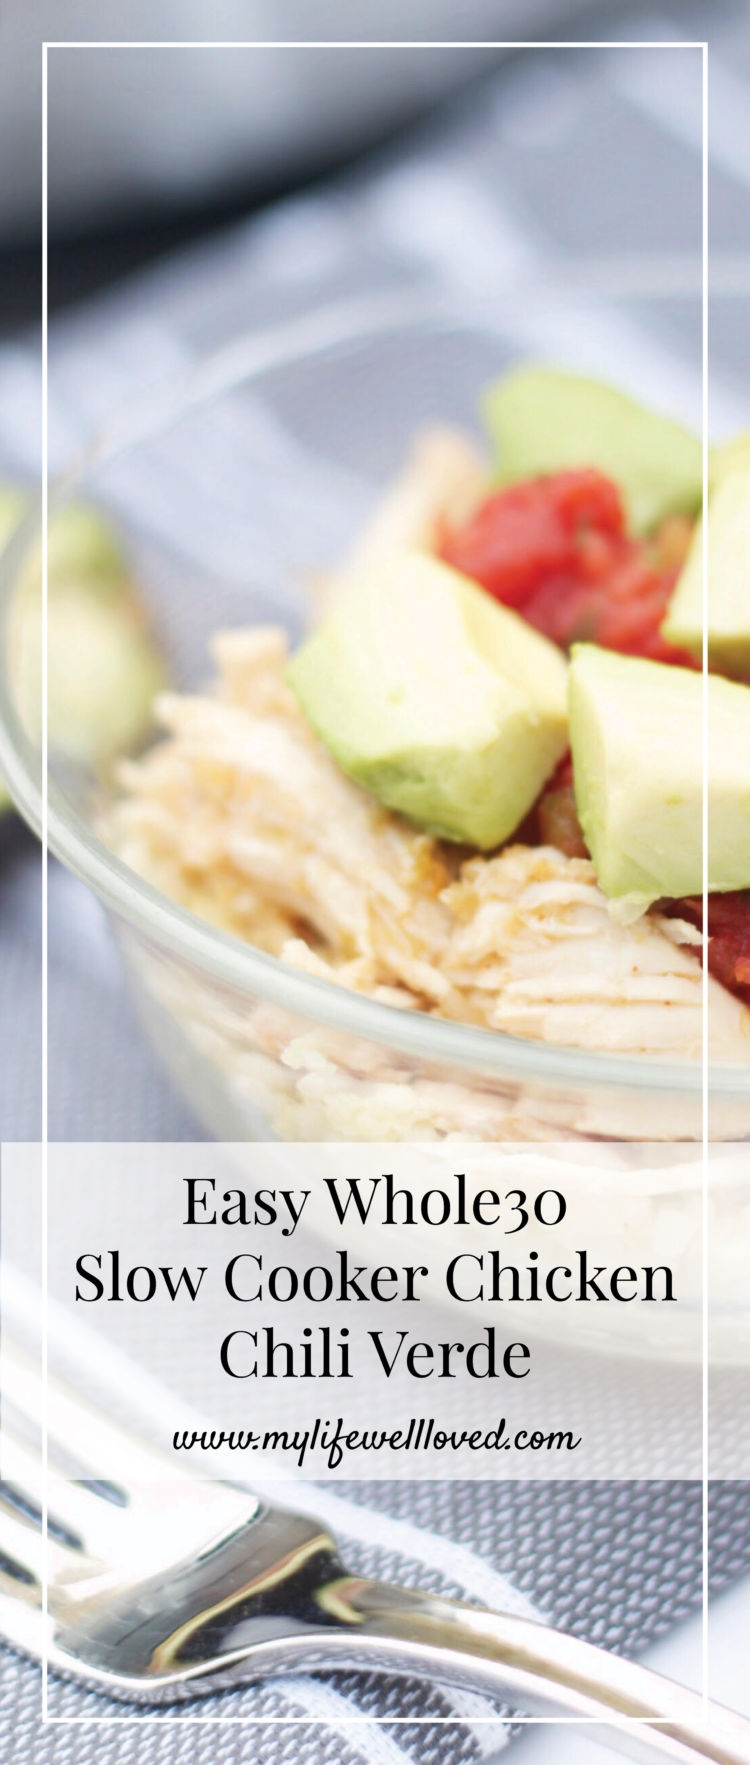 easy whole 30 slow cooker chicken verde by alabama blogger heather brown // healthy meals // crock pot recipes //